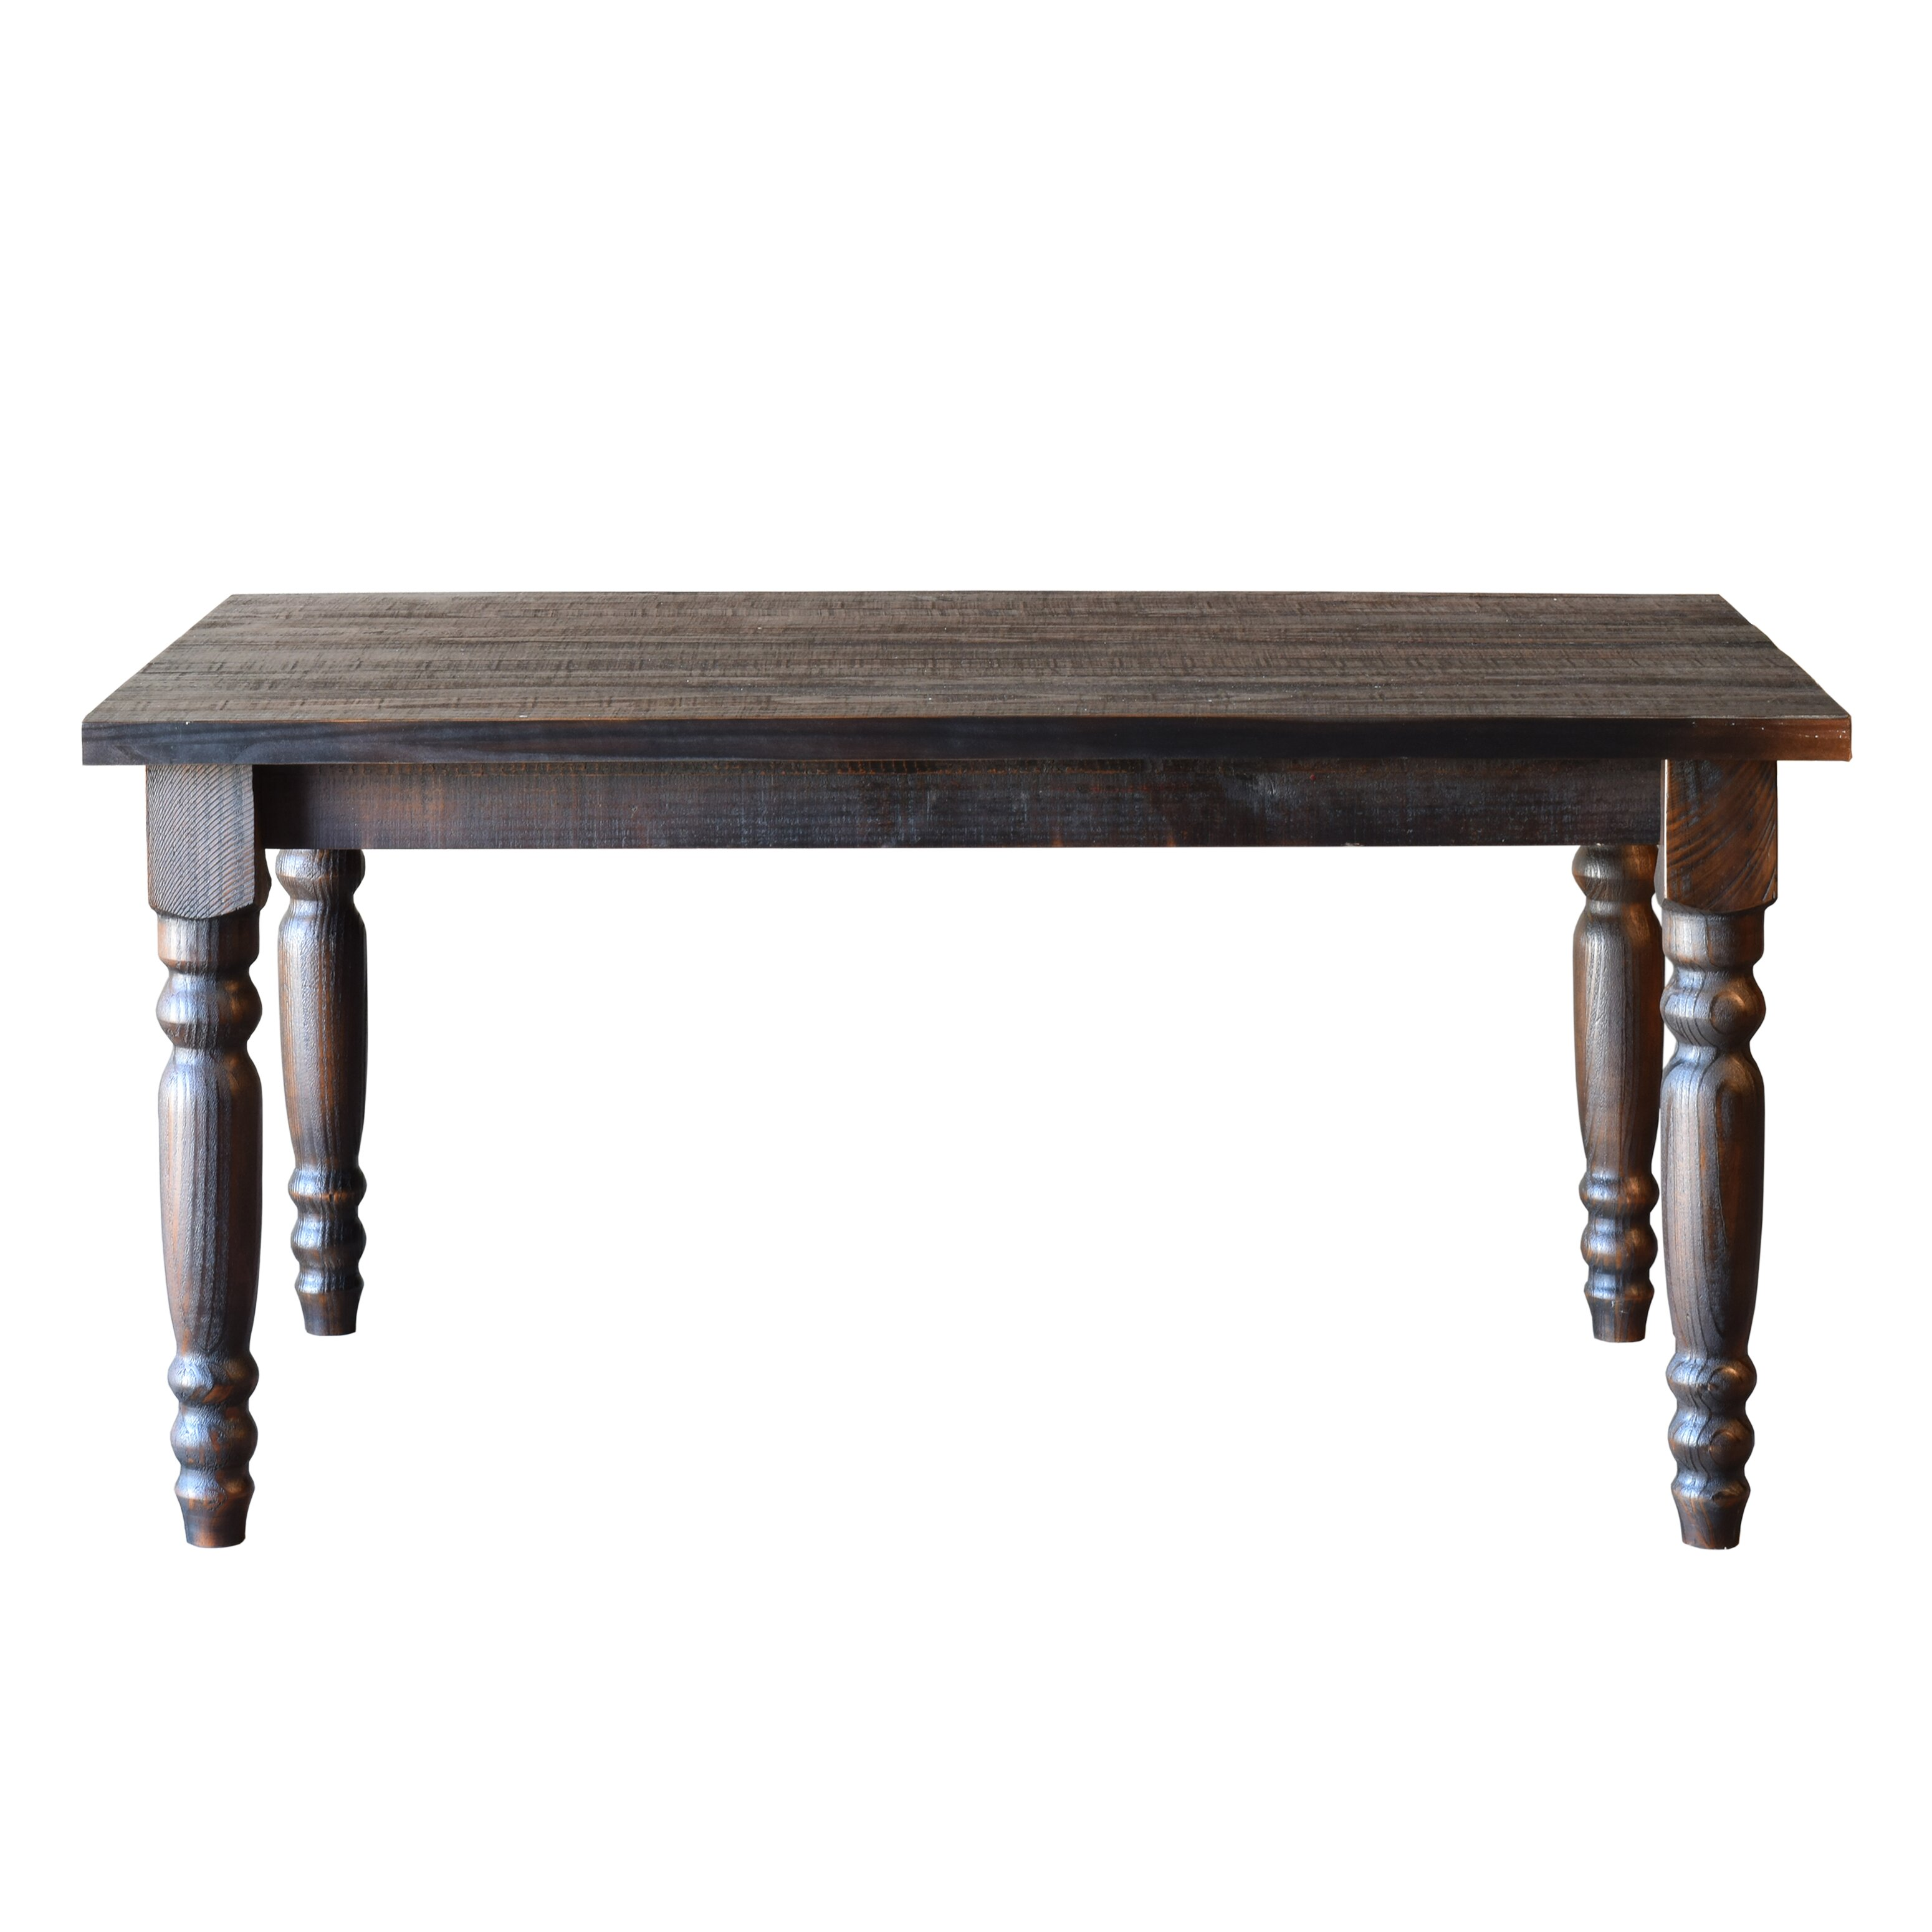 Grain wood furniture valerie dining table reviews wayfair for On the dining table